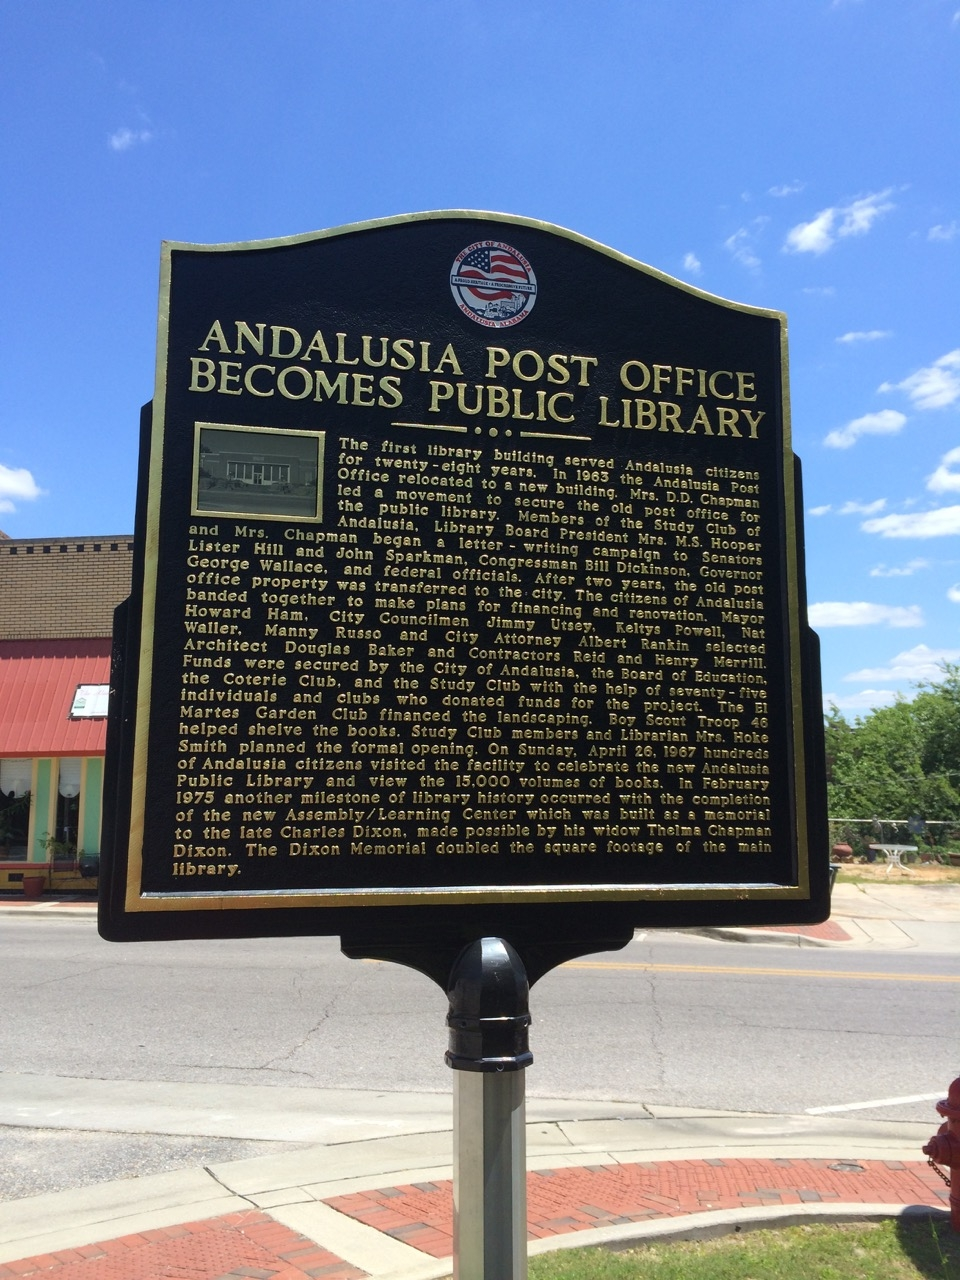 Andalusia Post Office becomes Public Library Marker